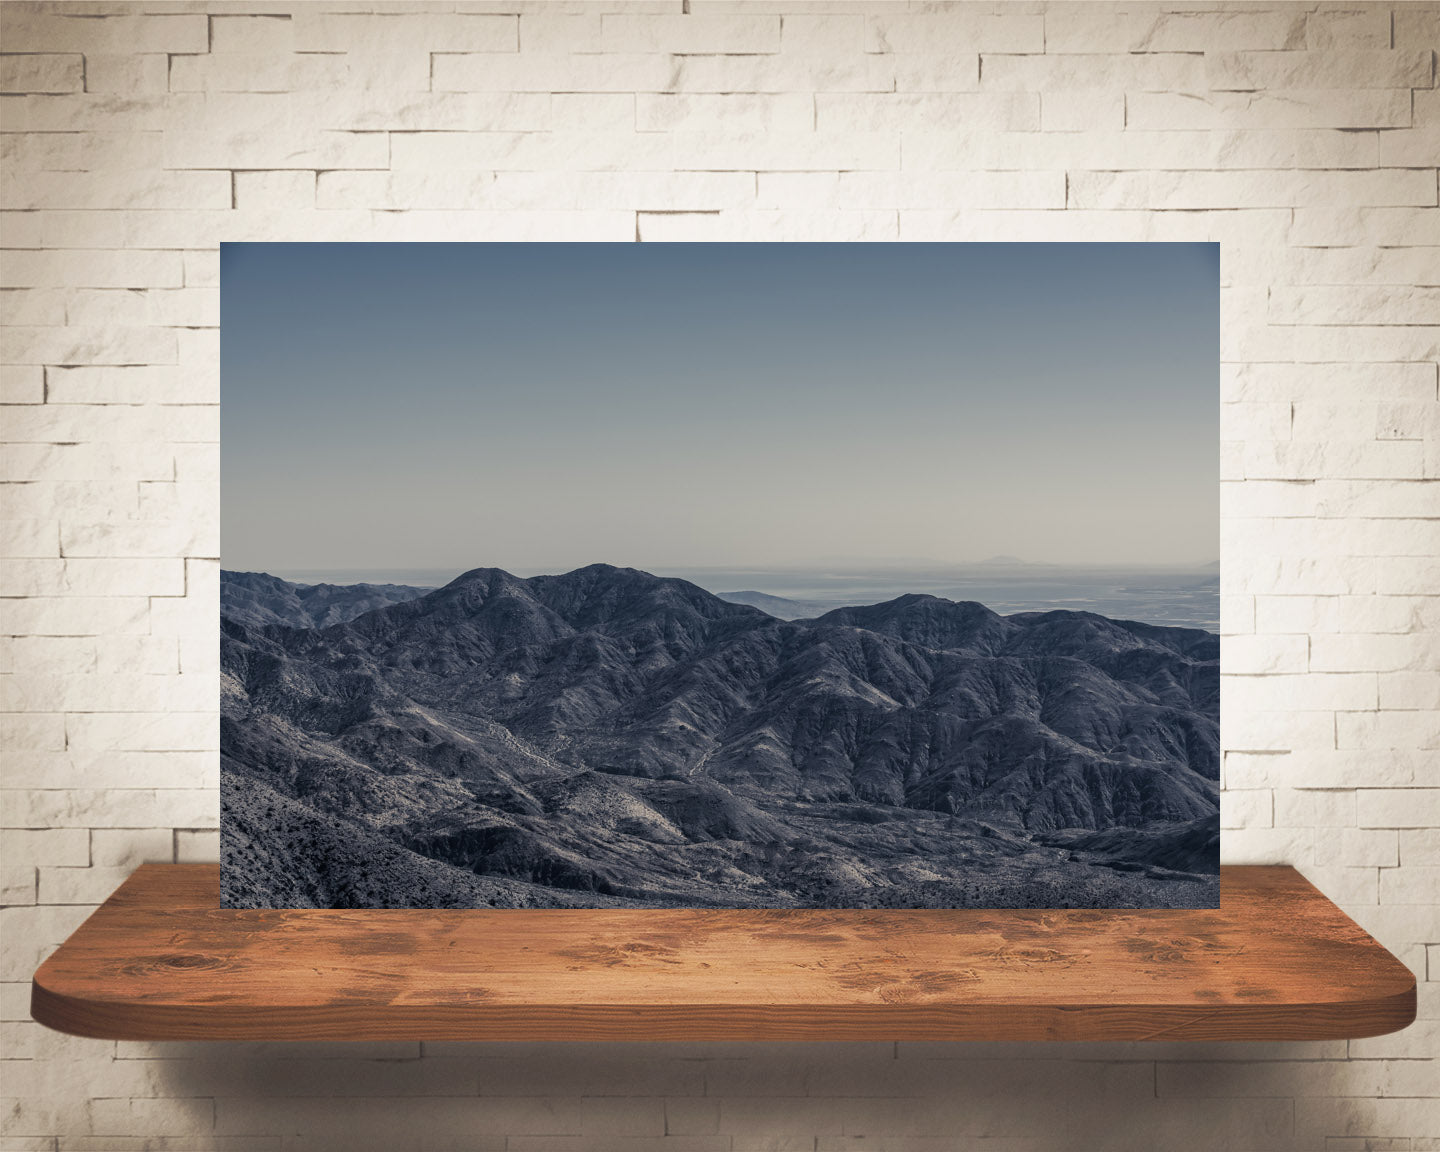 Desert Mountain Landscape Photograph